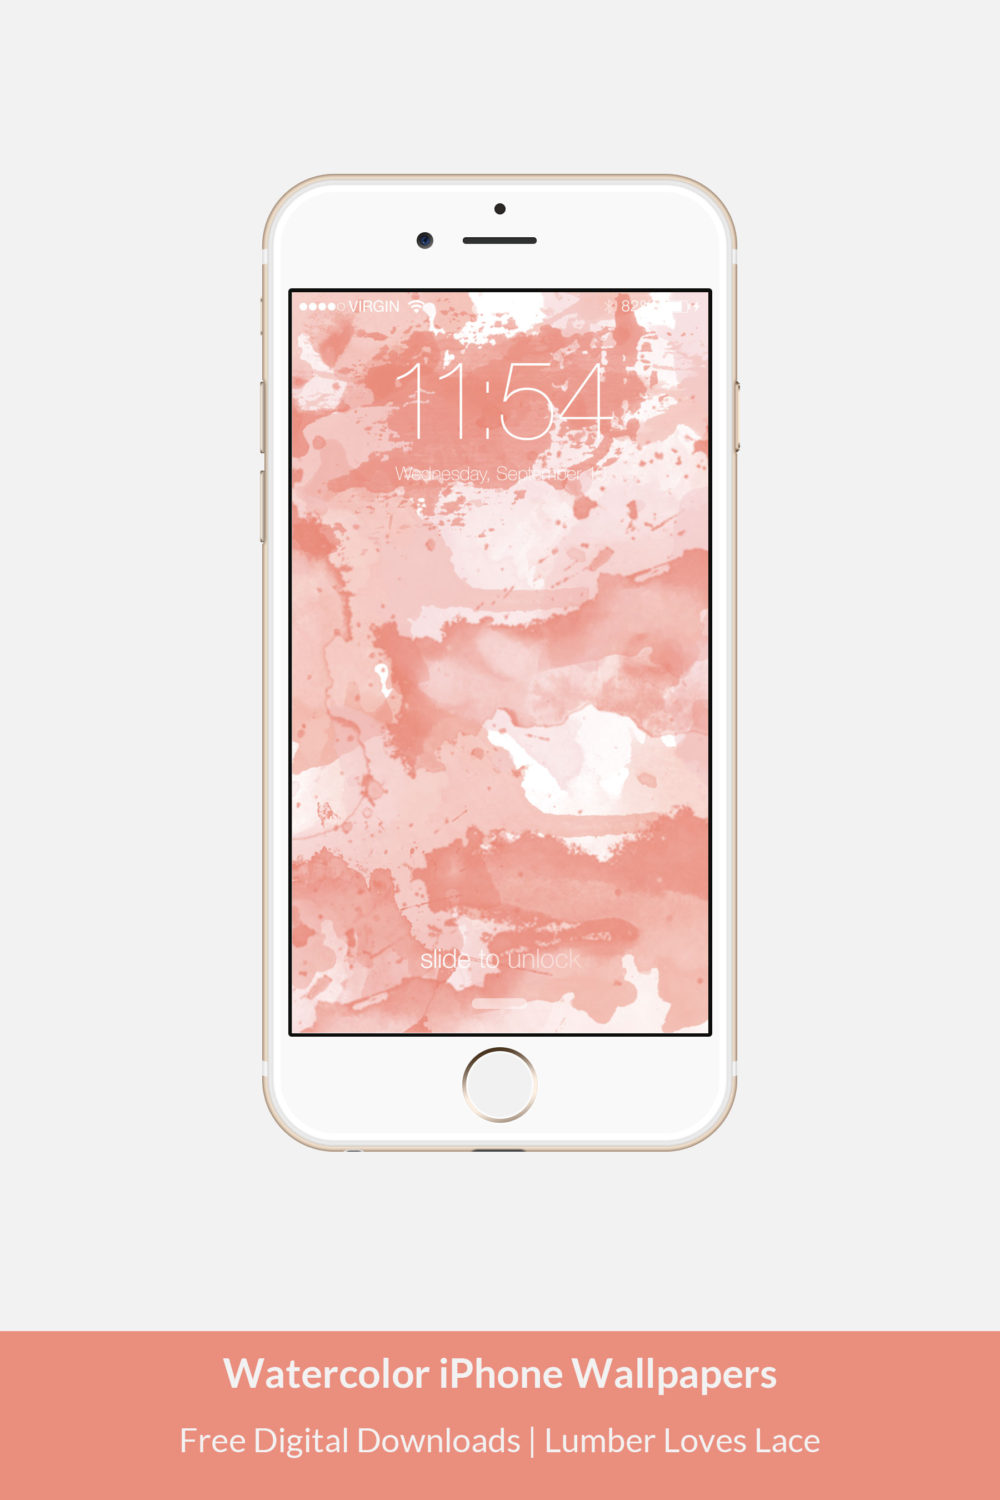 Watercolor iPhone Wallpapers Free Digital Download by Morgan Behrens | Lumber Loves Lace